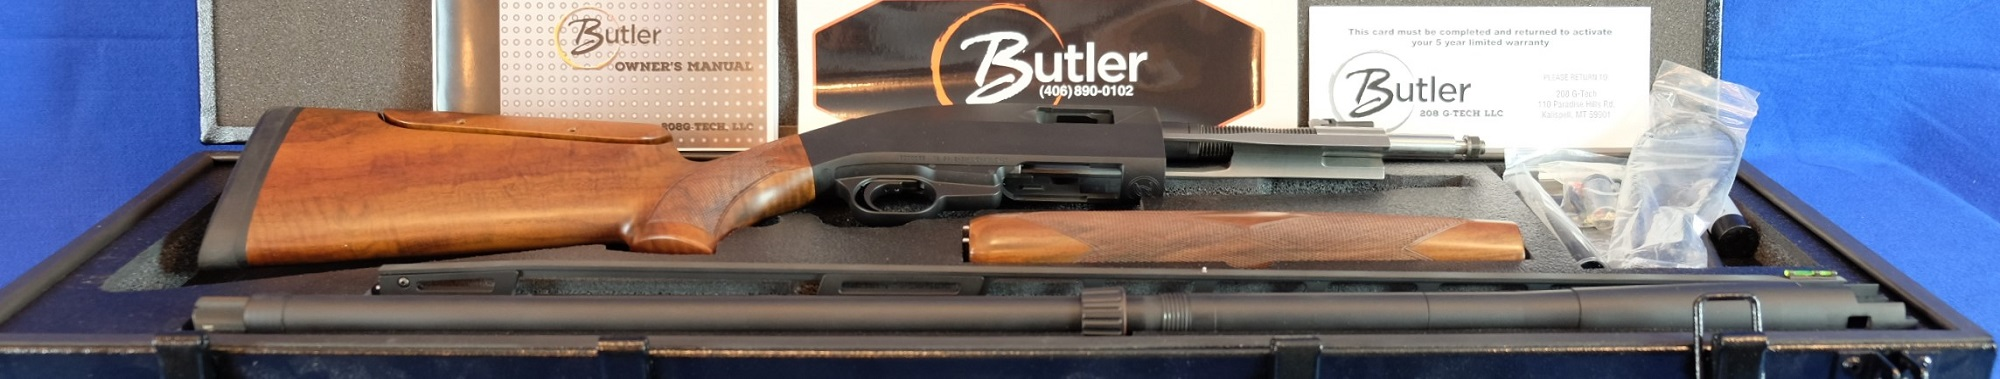 BUTLER (Made in the USA) 12 Gauge Black ( 2 Shell Semi)  30″ Barrel  Adjustable Comb and Rib – #B000065